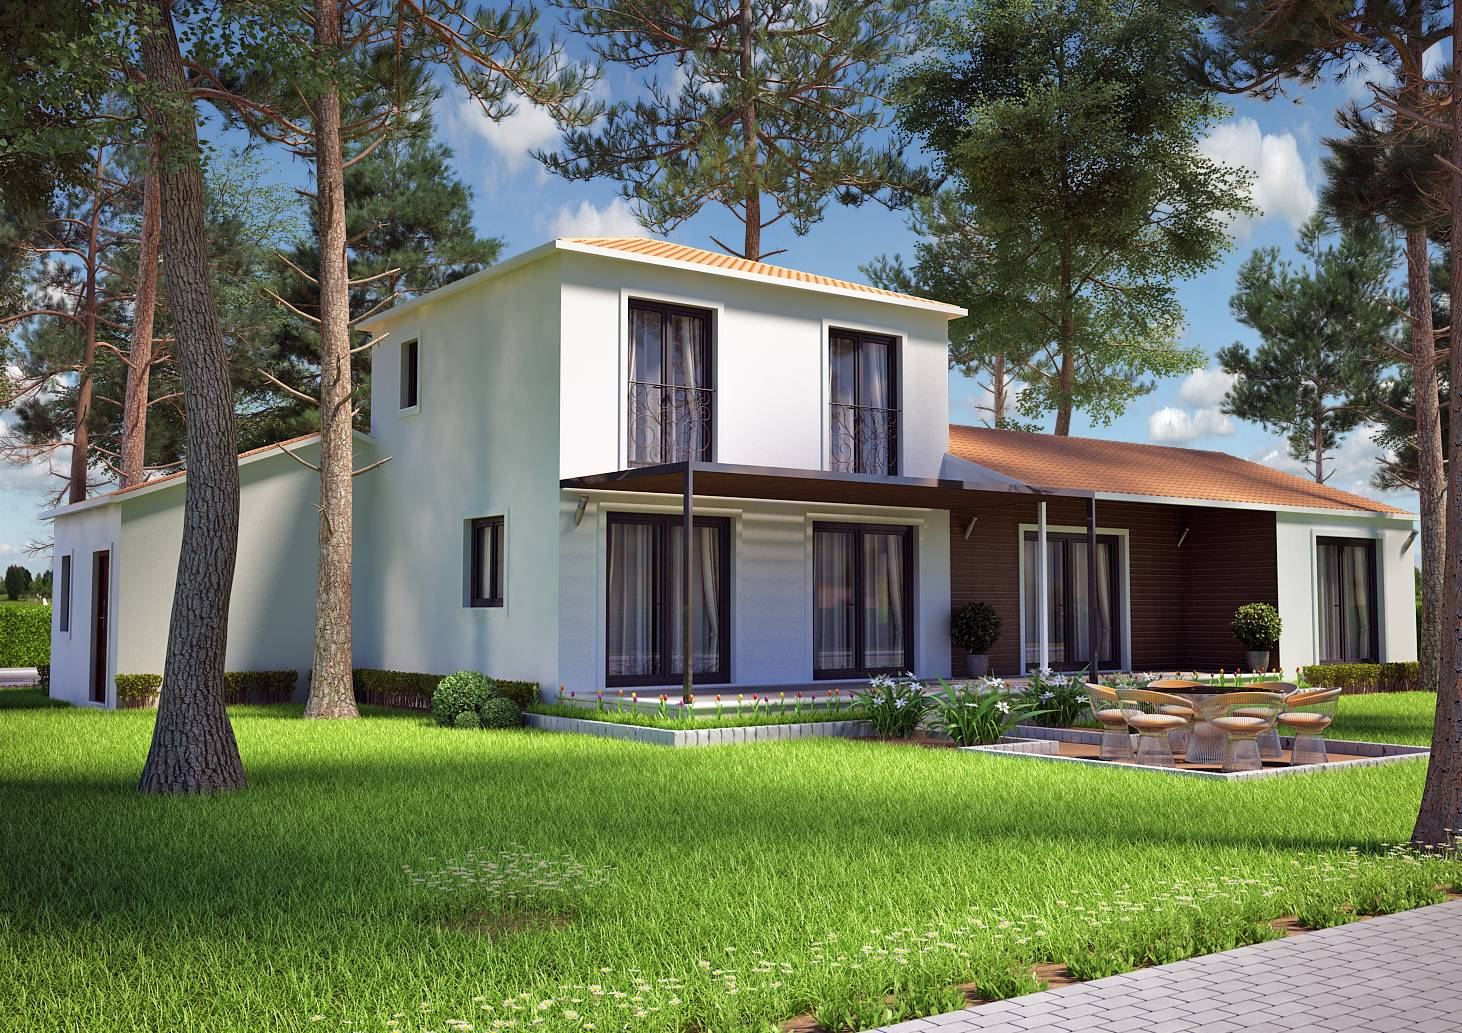 Villa contemporaine 115m2 etage mod le iris salon de for Modele de villa